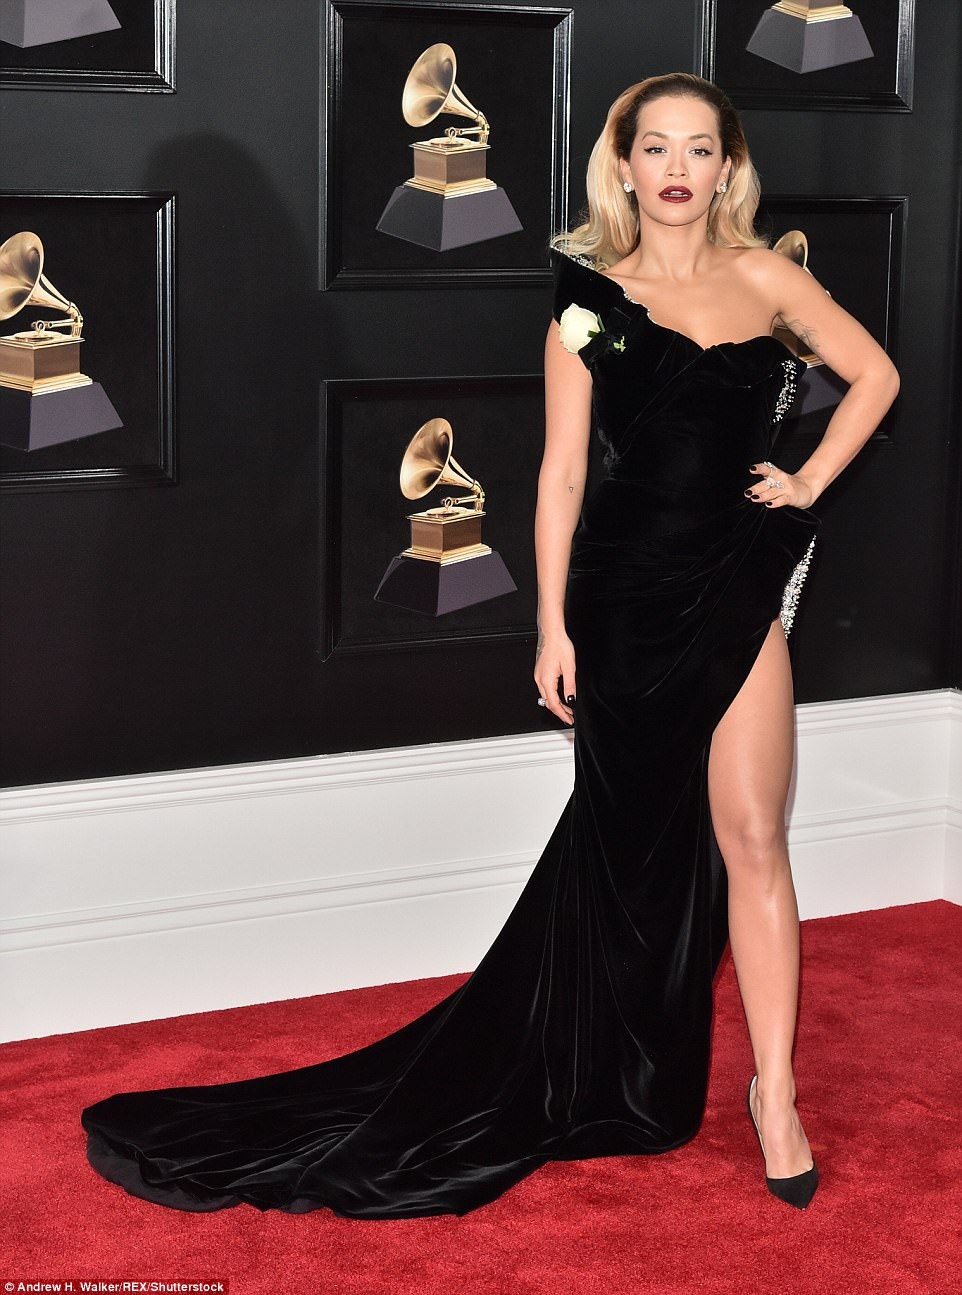 Rita Ora, Rita Ora goes completely unclad to promote her new song (Photo)